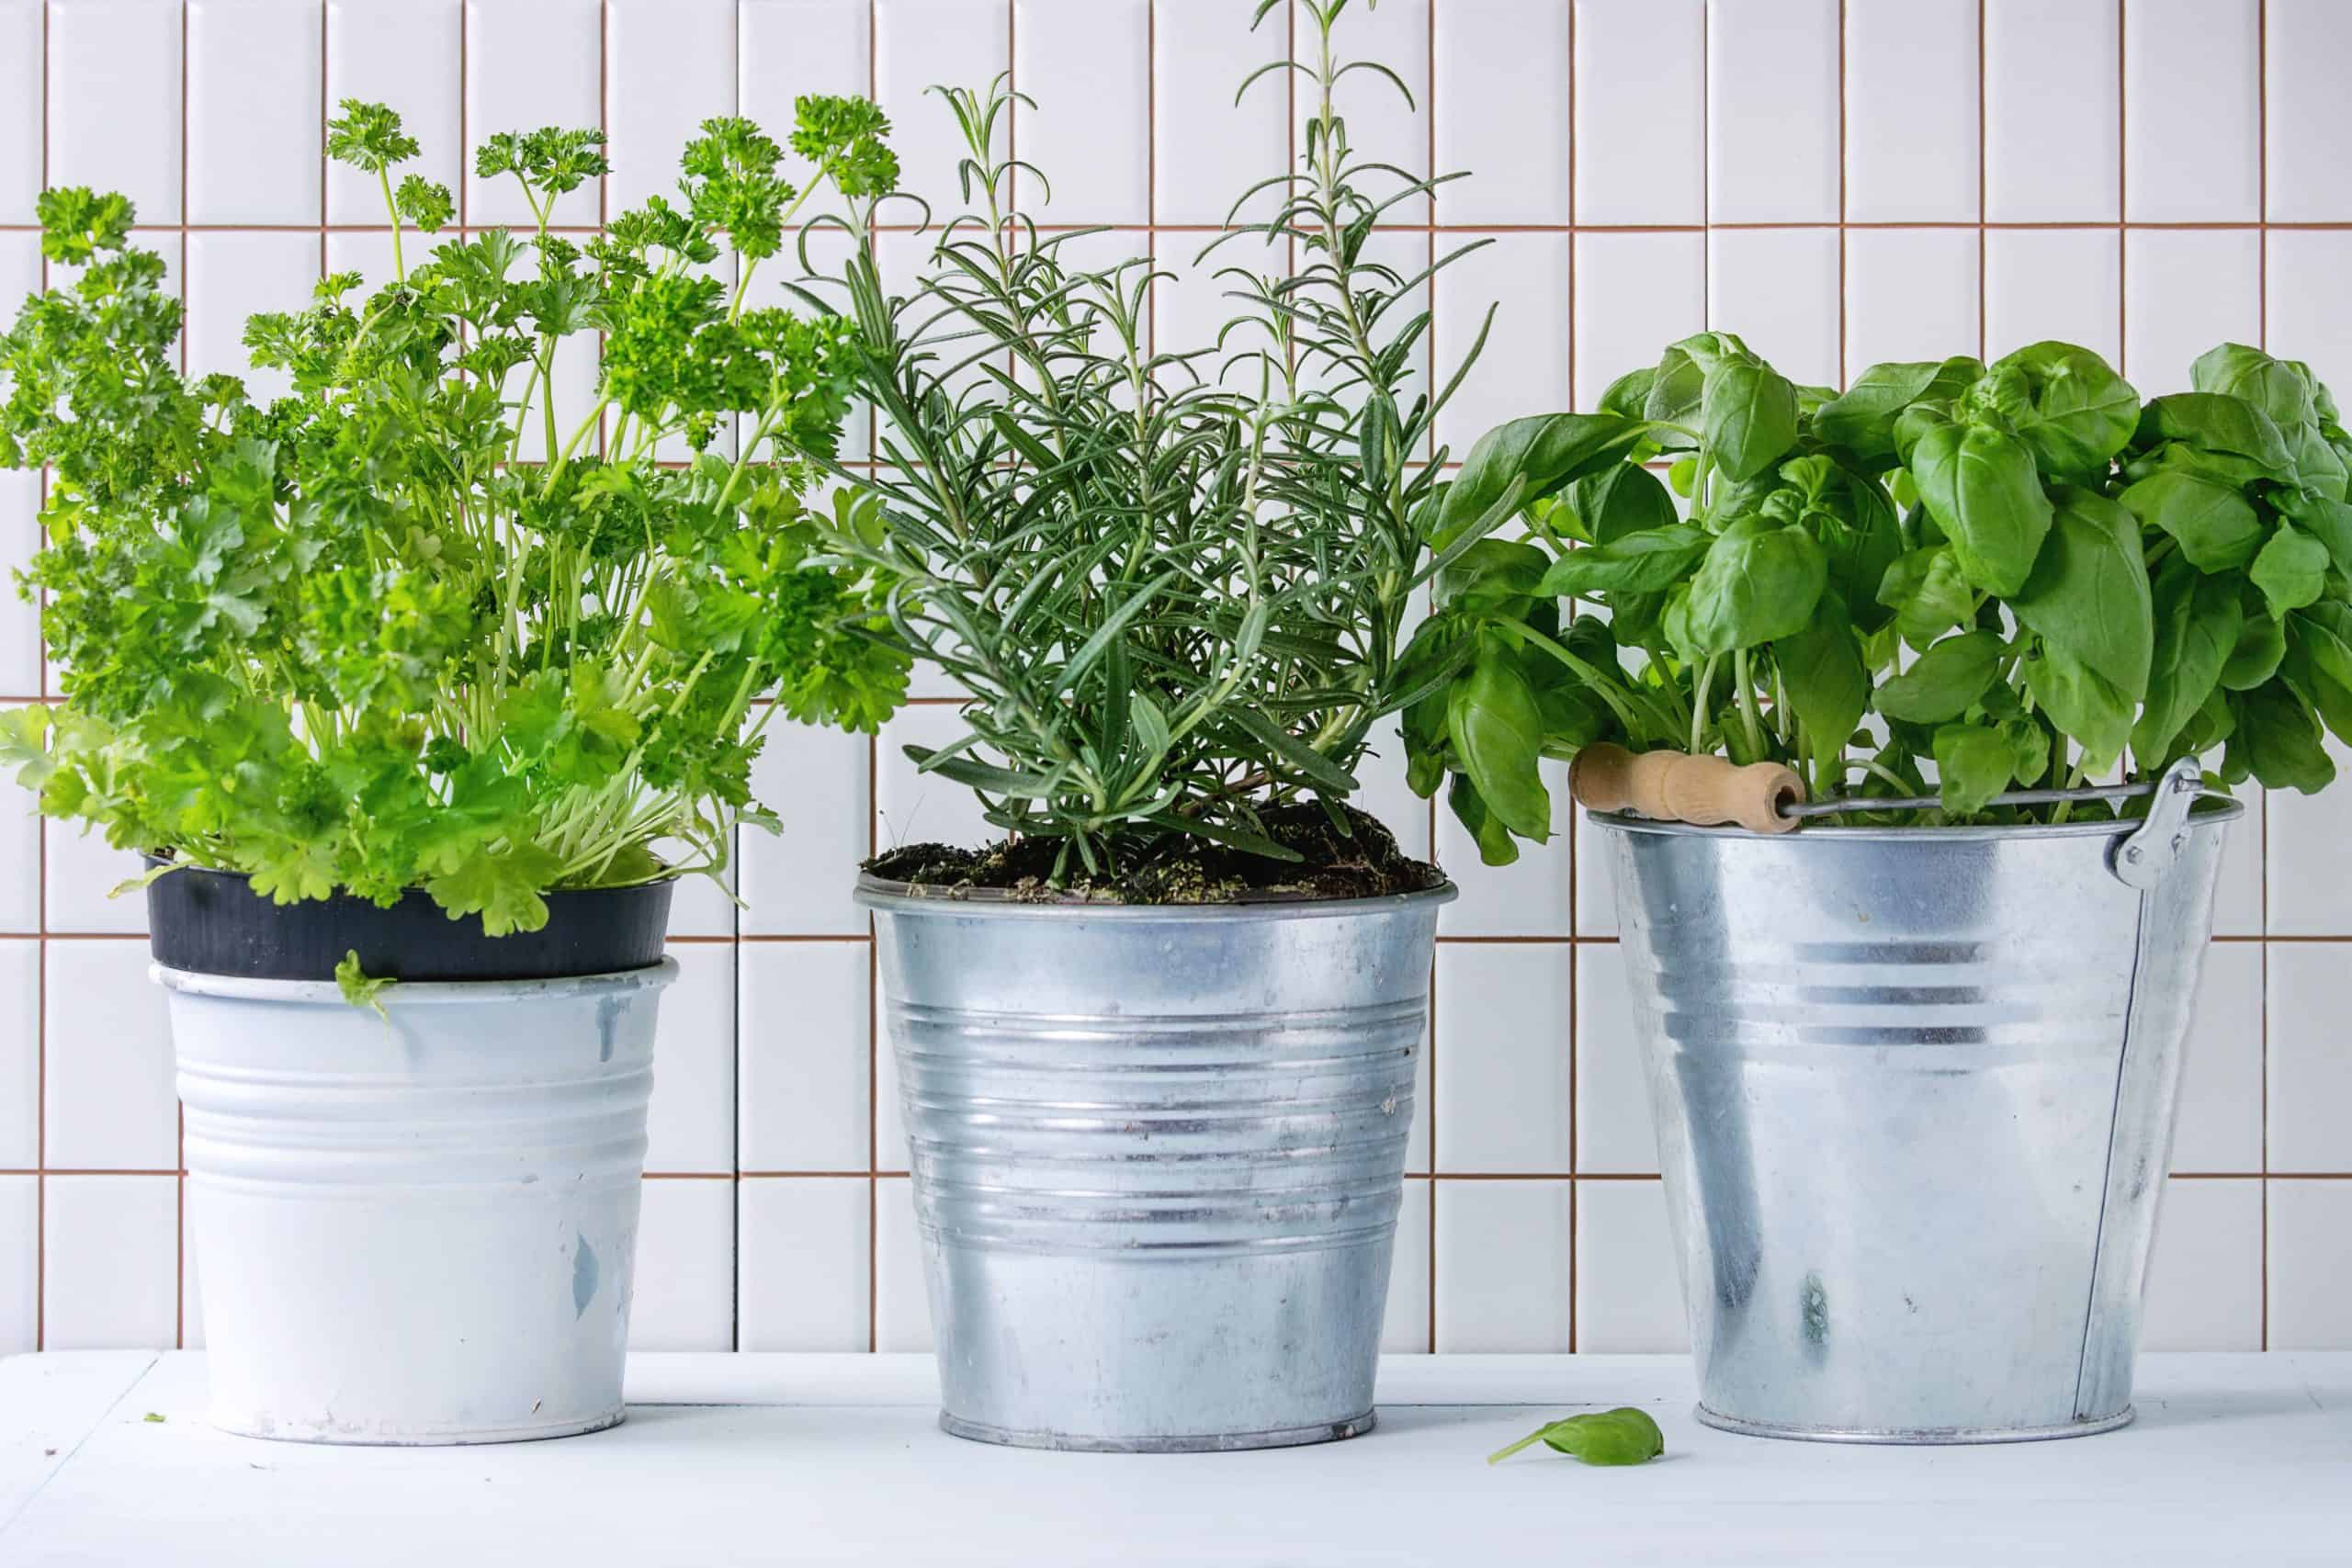 Herb garden on shelf in house. Healthy herbs for dogs can do everything from ease upset tummies and reduce inflammation to promote liver health and help dogs sleep.